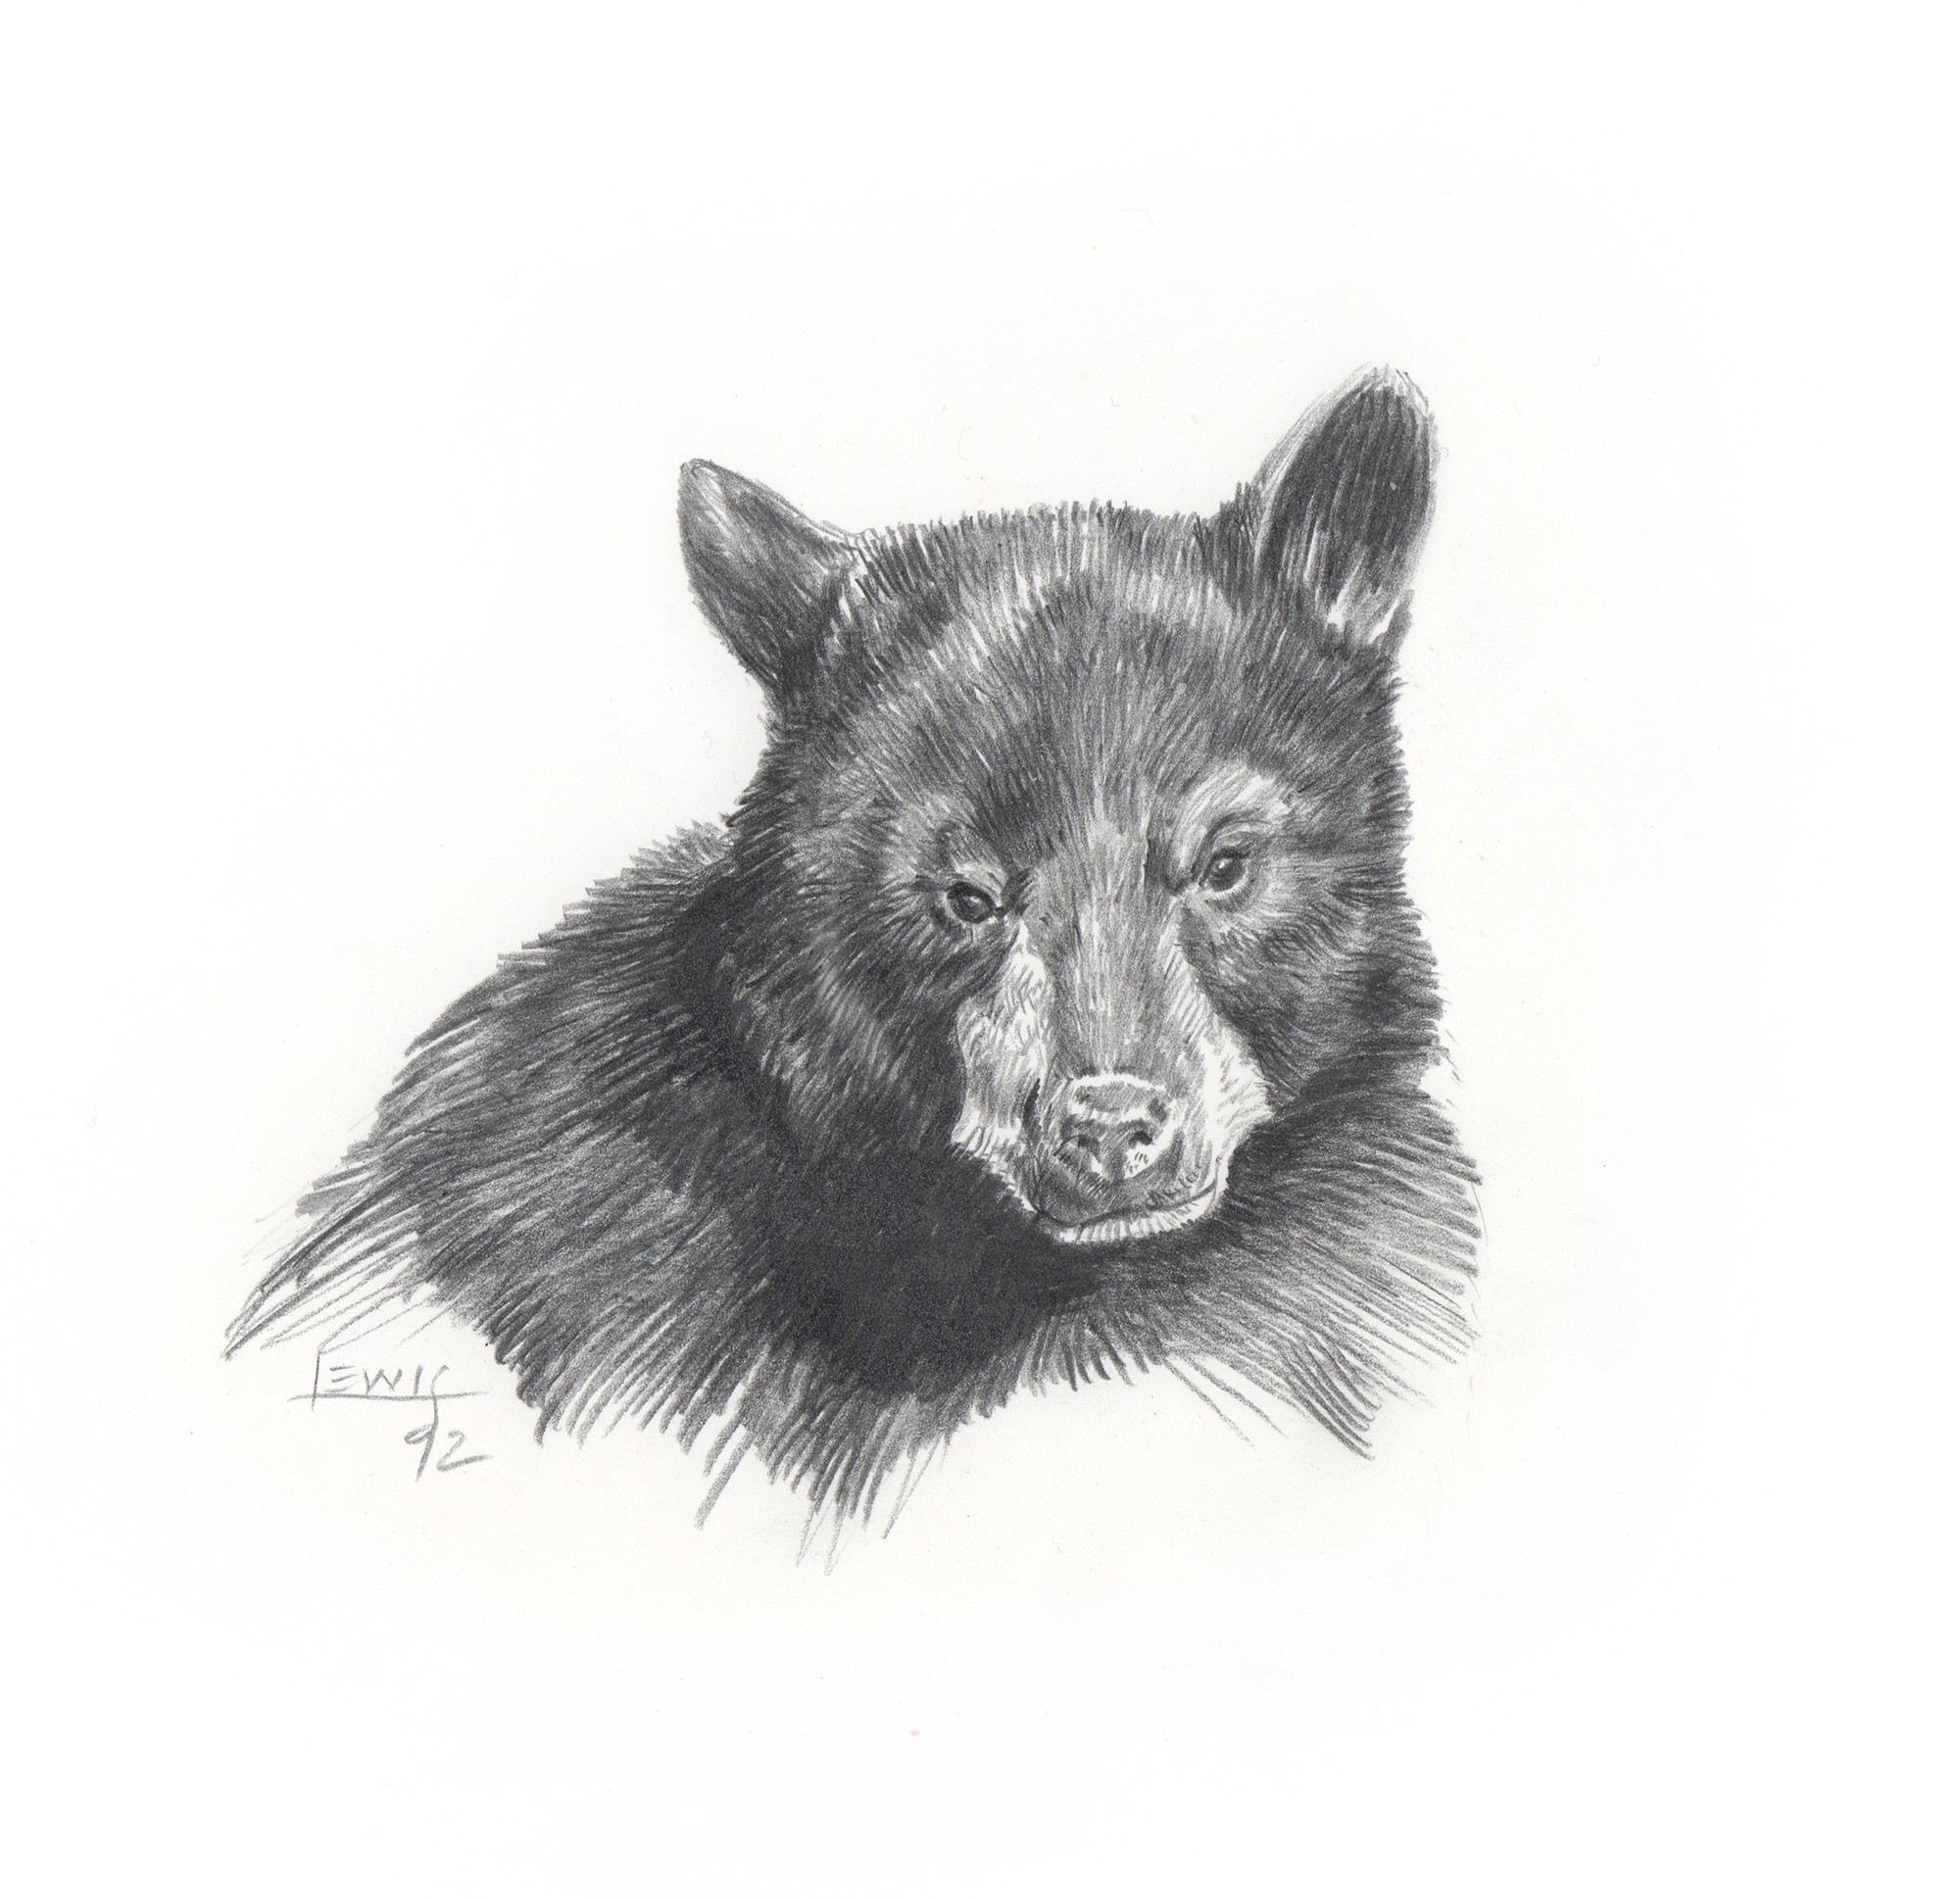 Young black bear. Pencil on paper.